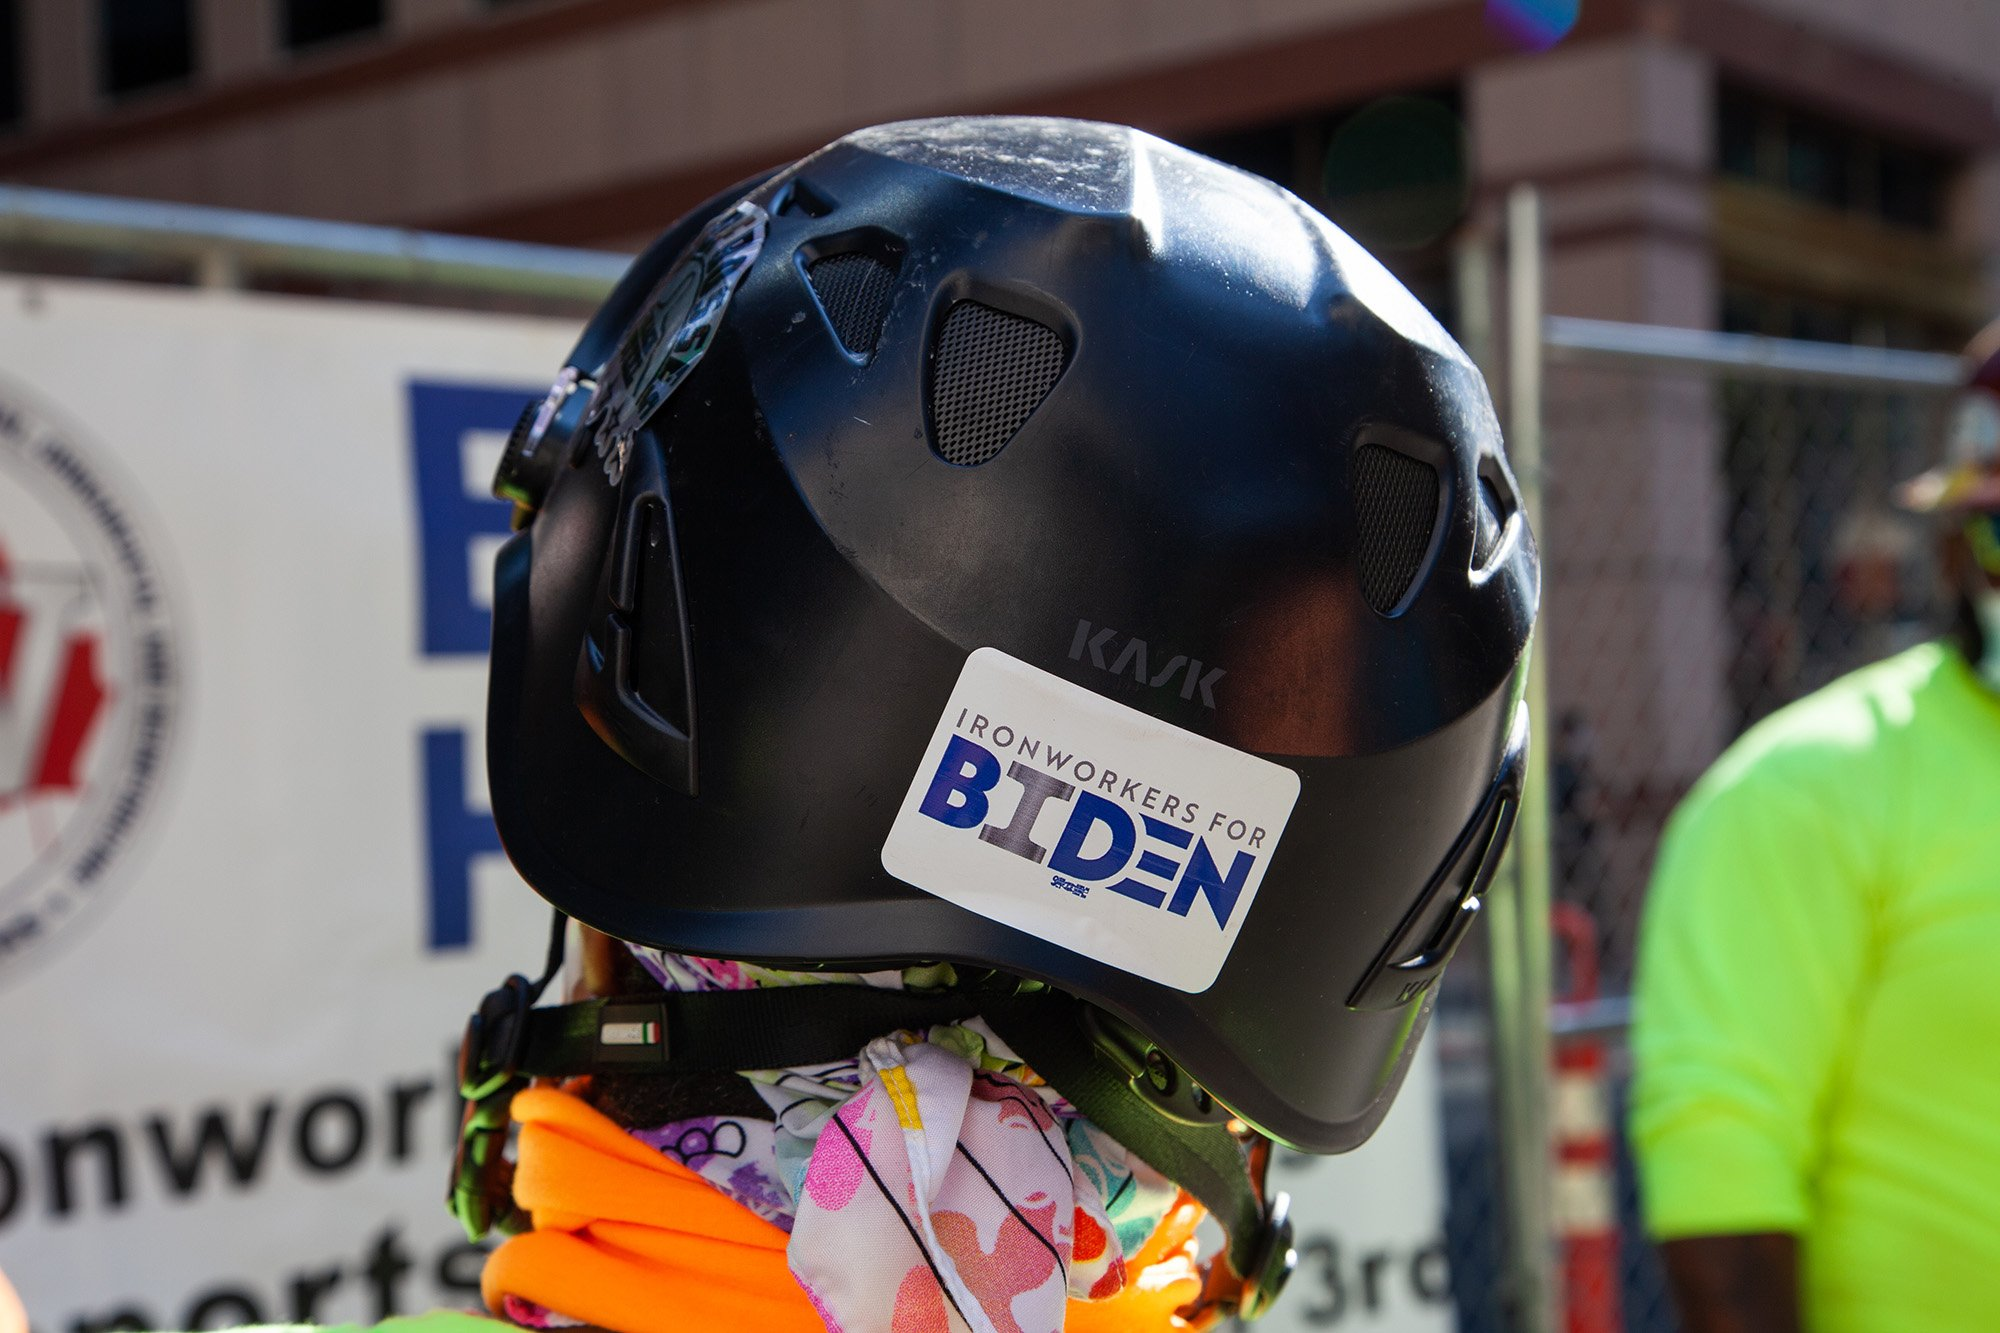 """Local 7 members joined union construction workers from across the region at a """"Hardhats for Biden/Harris"""" event in October 2020."""